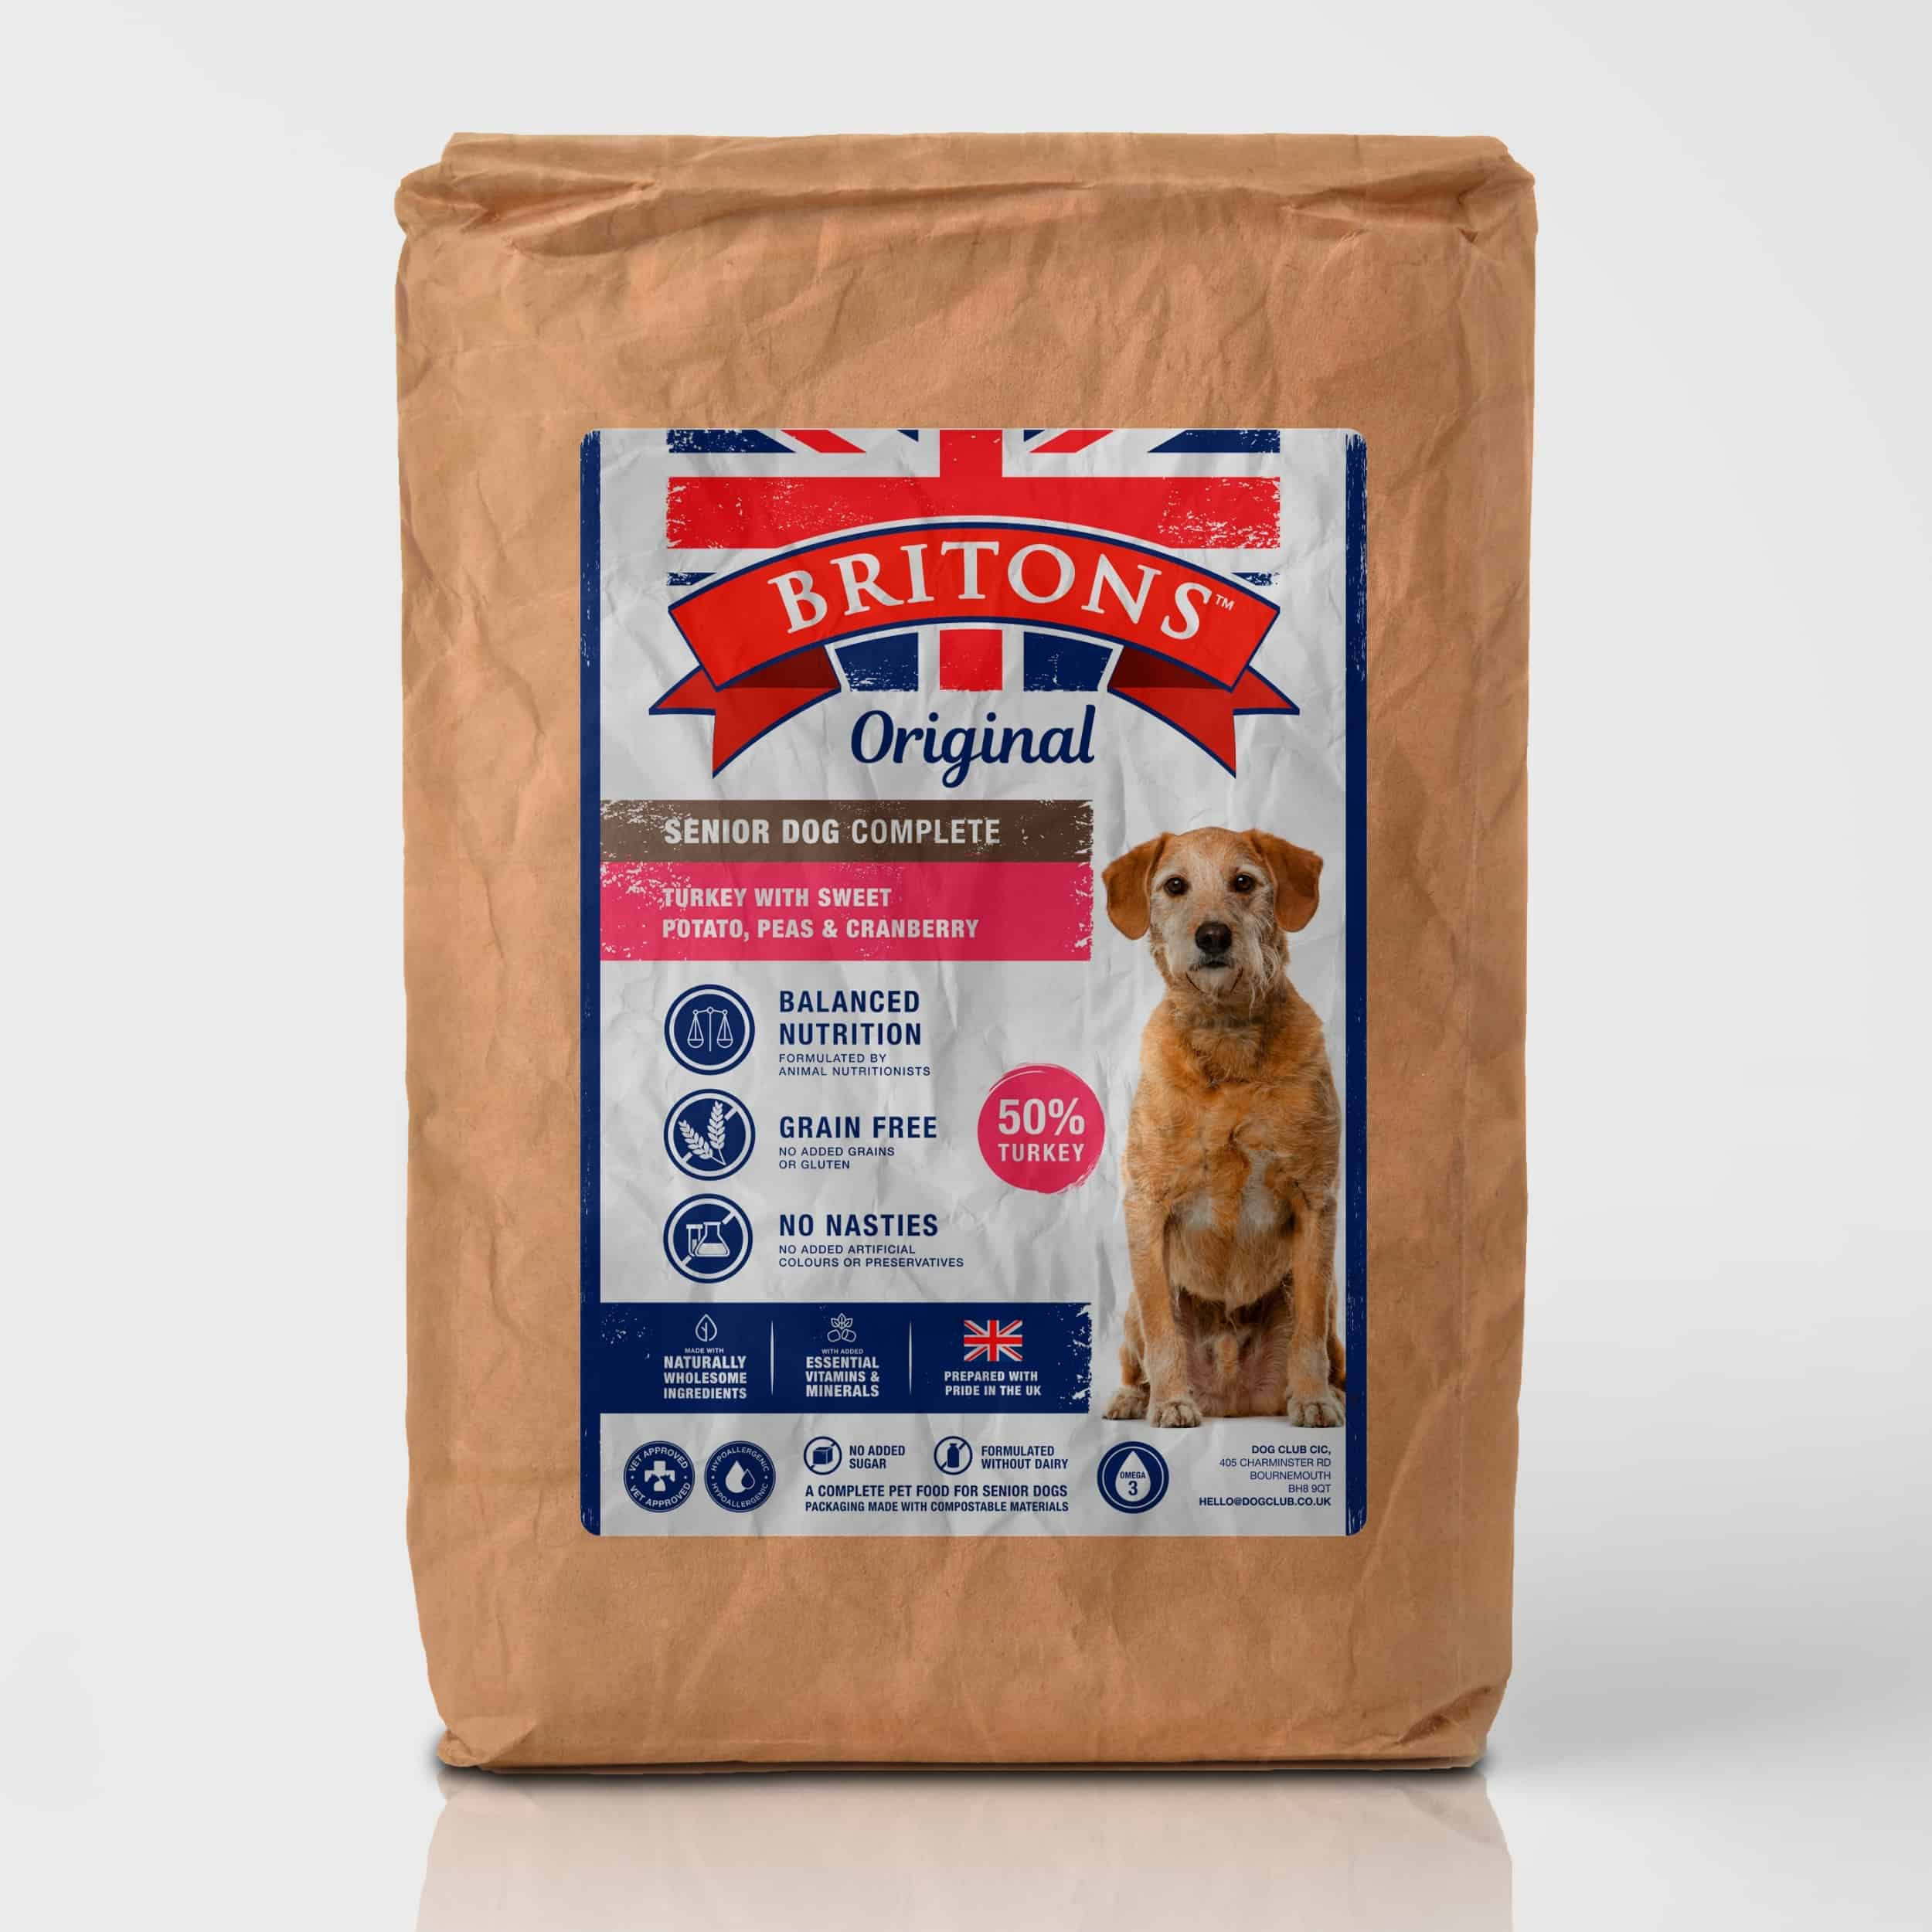 Senior dog, grain free, complete dry food. Freshly prepared Turkey with Sweet Potato, Peas & Cranberry. Britons Original